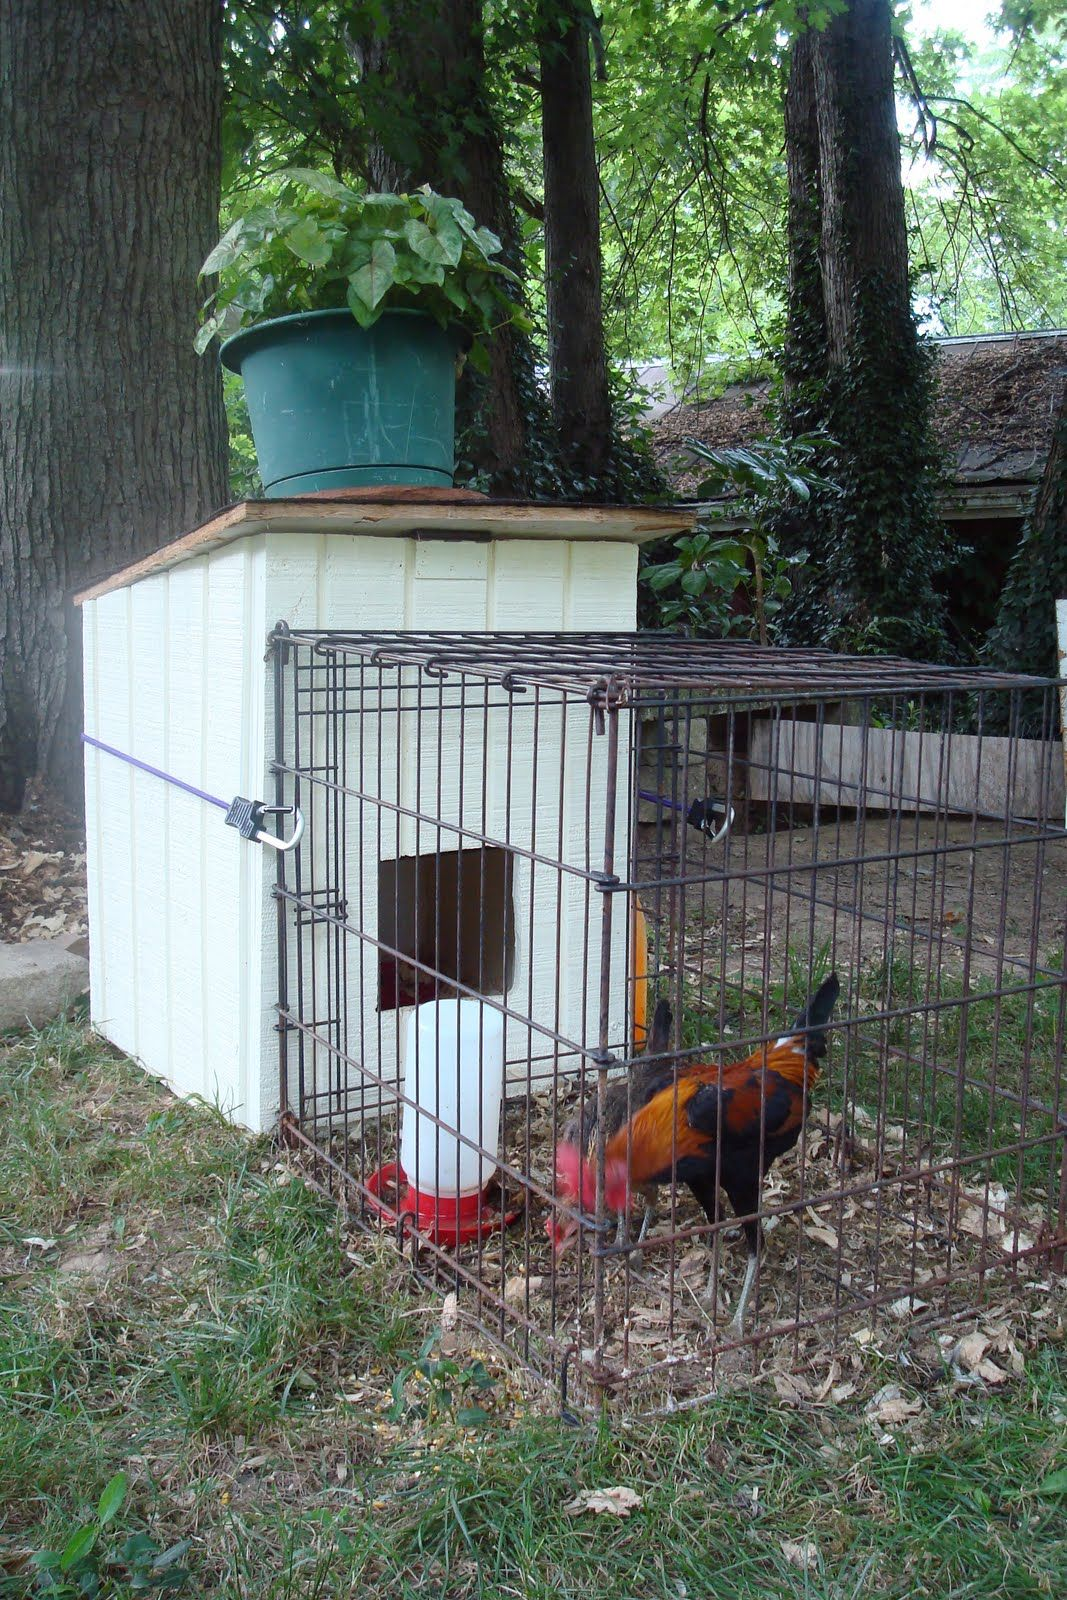 interesting little coop dog house attached to a dog kennel great